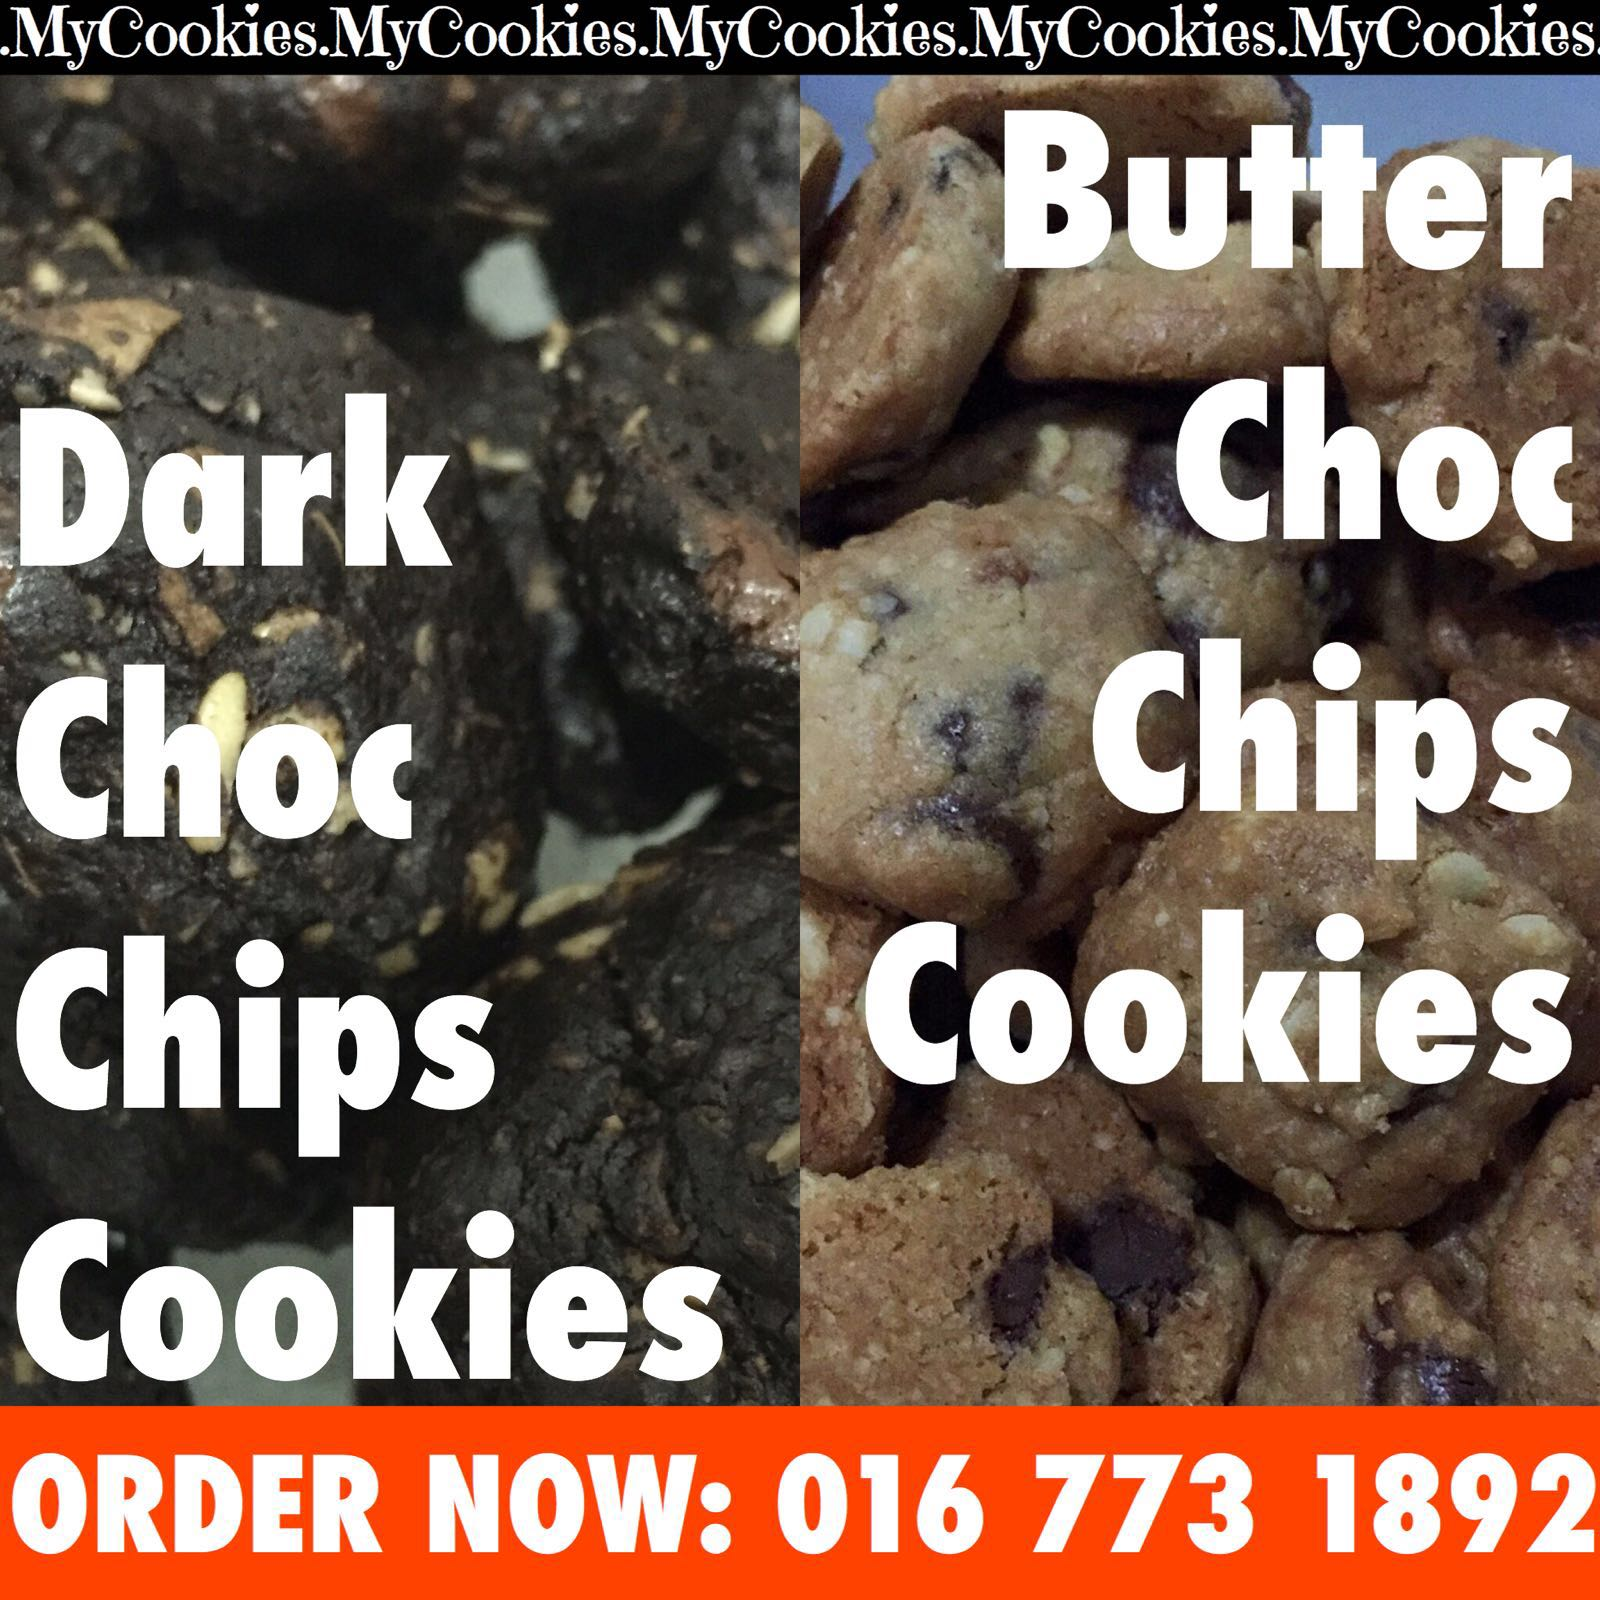 MyCookies by MD